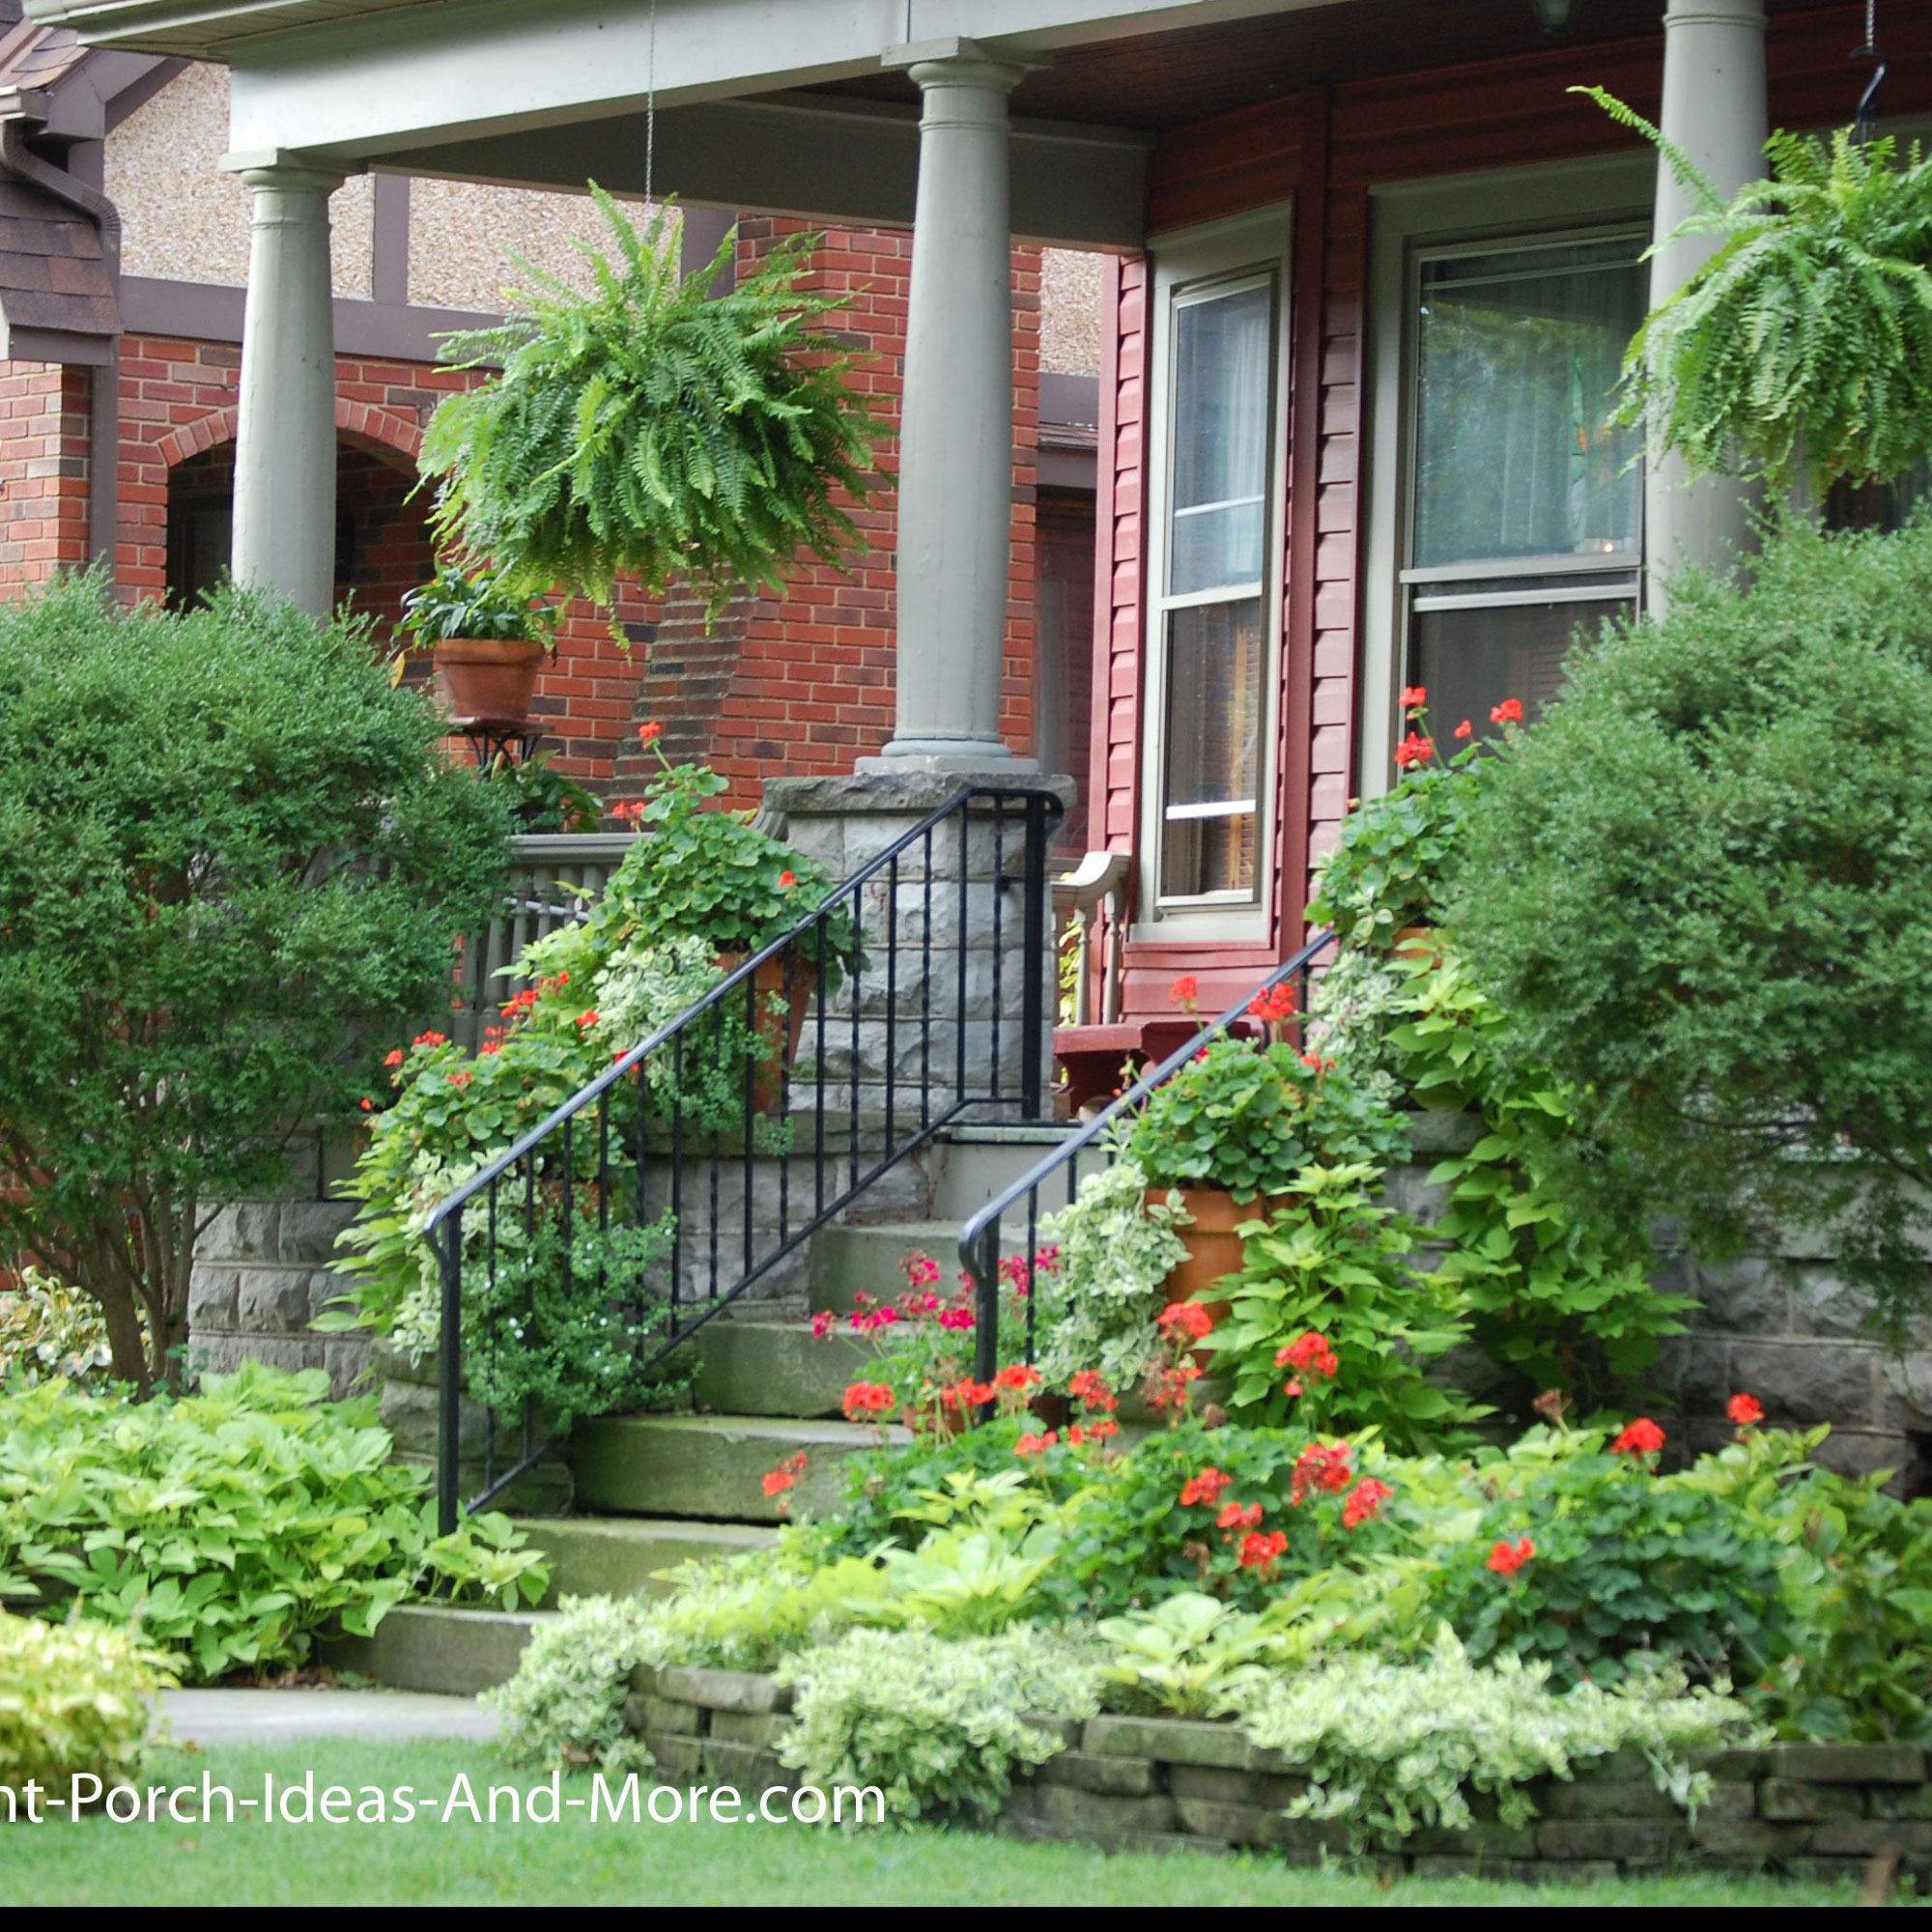 Porch landscaping ideas for your front yard and more for Landscaping your yard